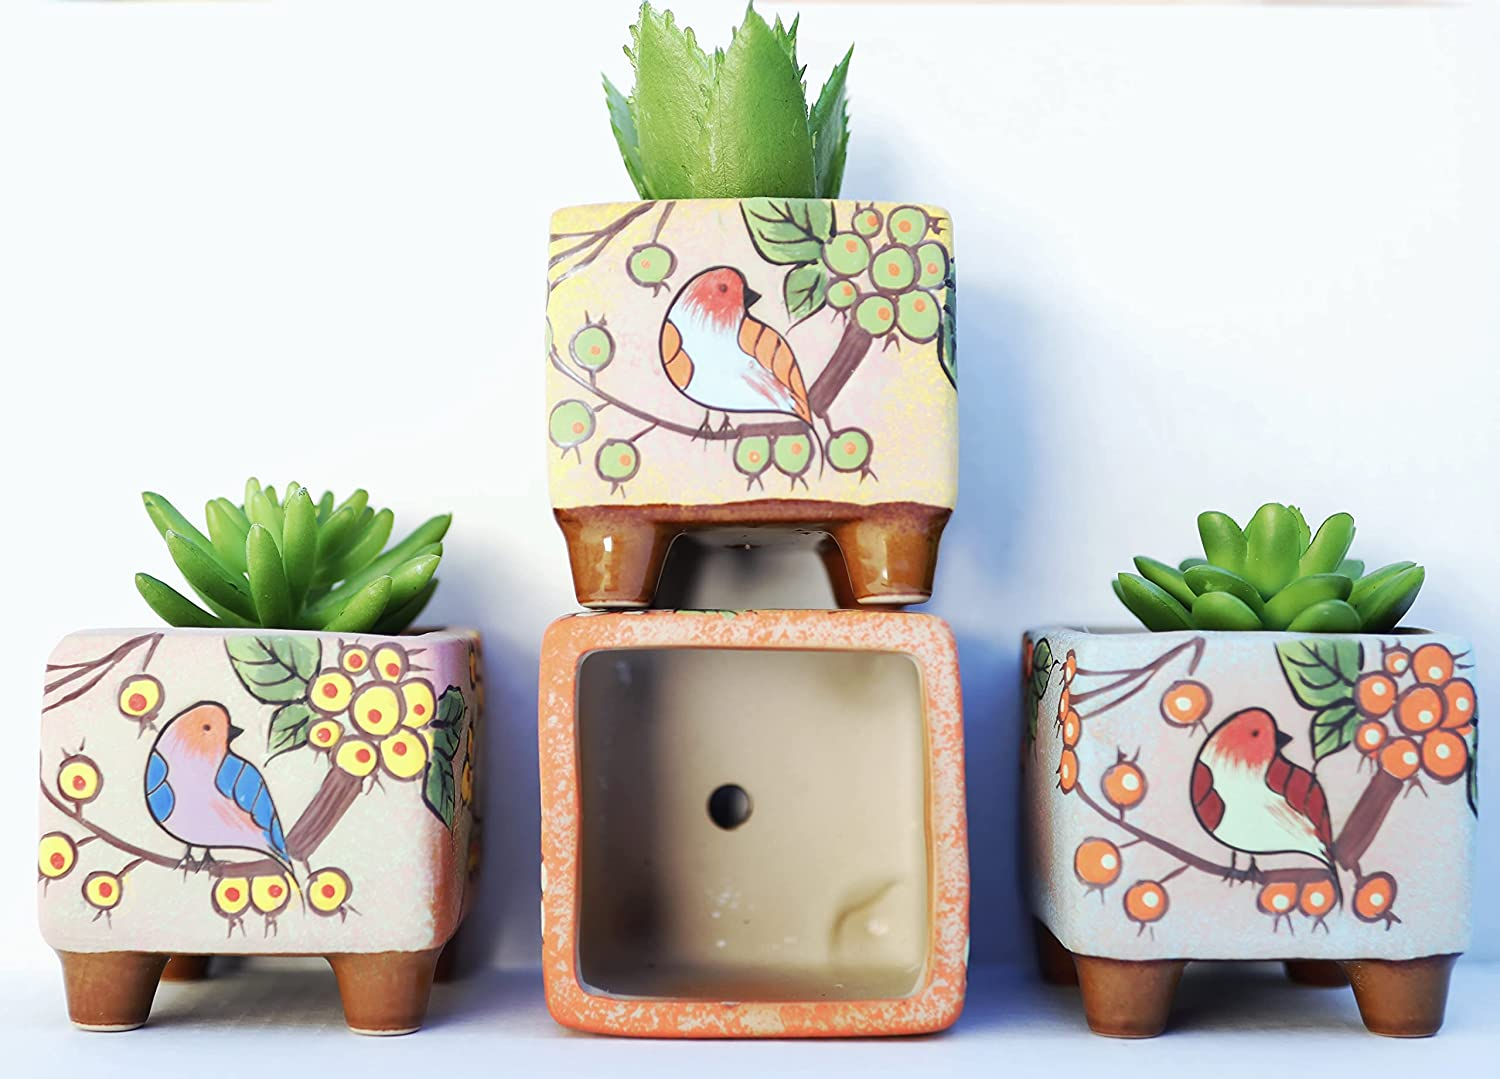 3 Inch Plant Ceramic Pots with Drainage Hole Best Gift for Women, Mom and Aunt and for Decoring Home Office and Garden - Set of 3 (Light Blue, Yellow, Pink)